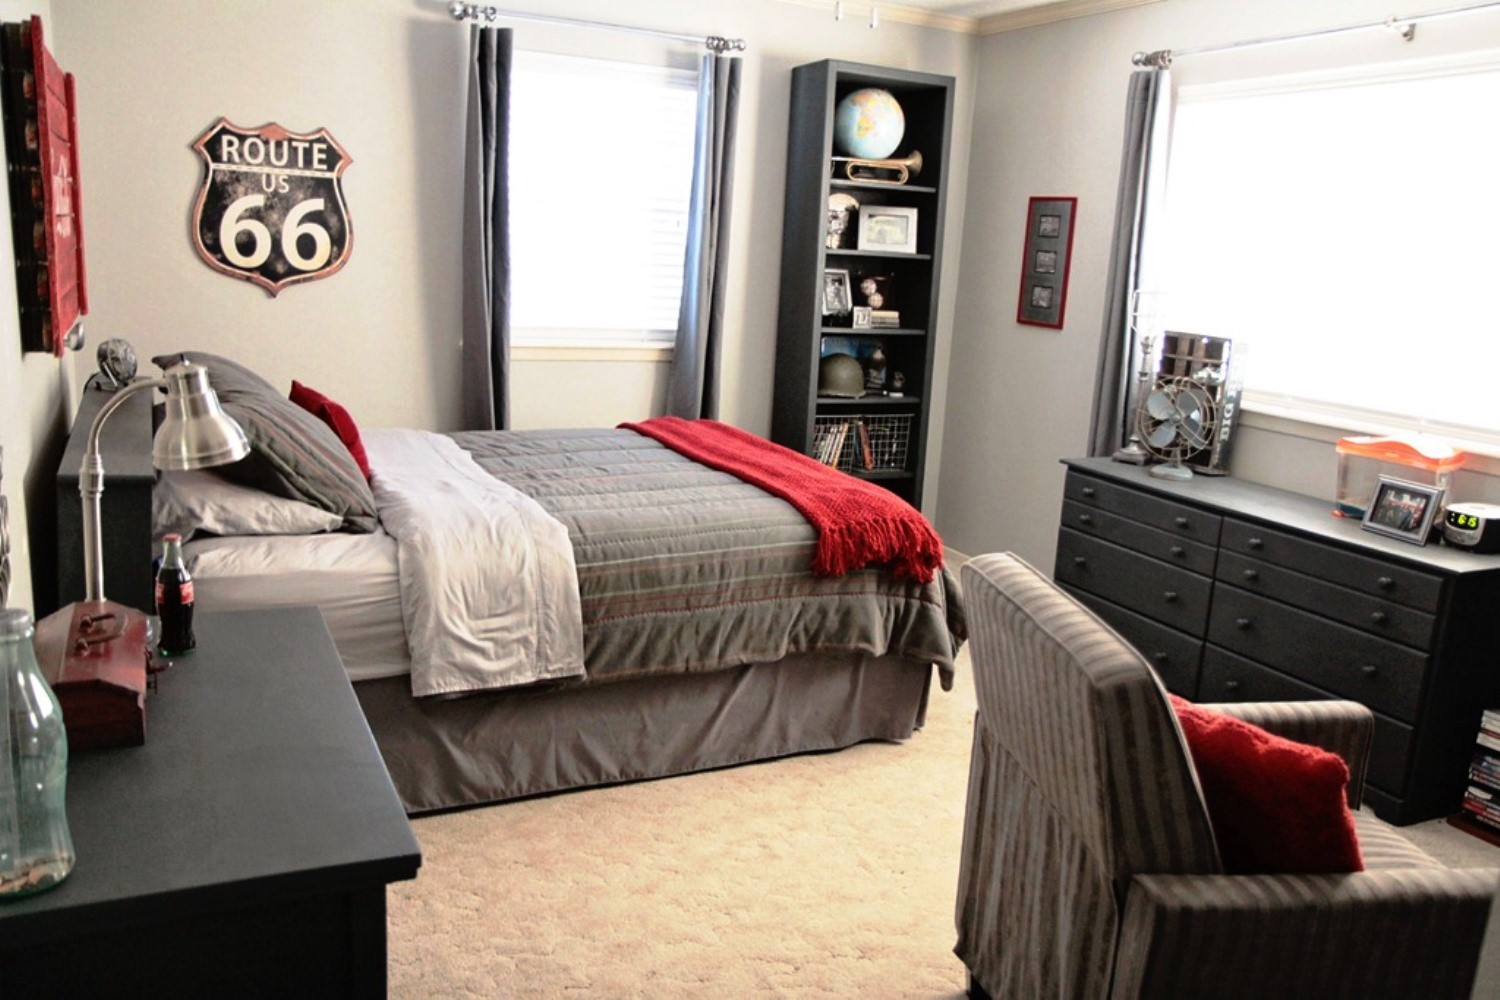 Old Fashioned Dark Dressers For Simple Teen Room Ideas With Grey Bedding  And Sofa On Carpet